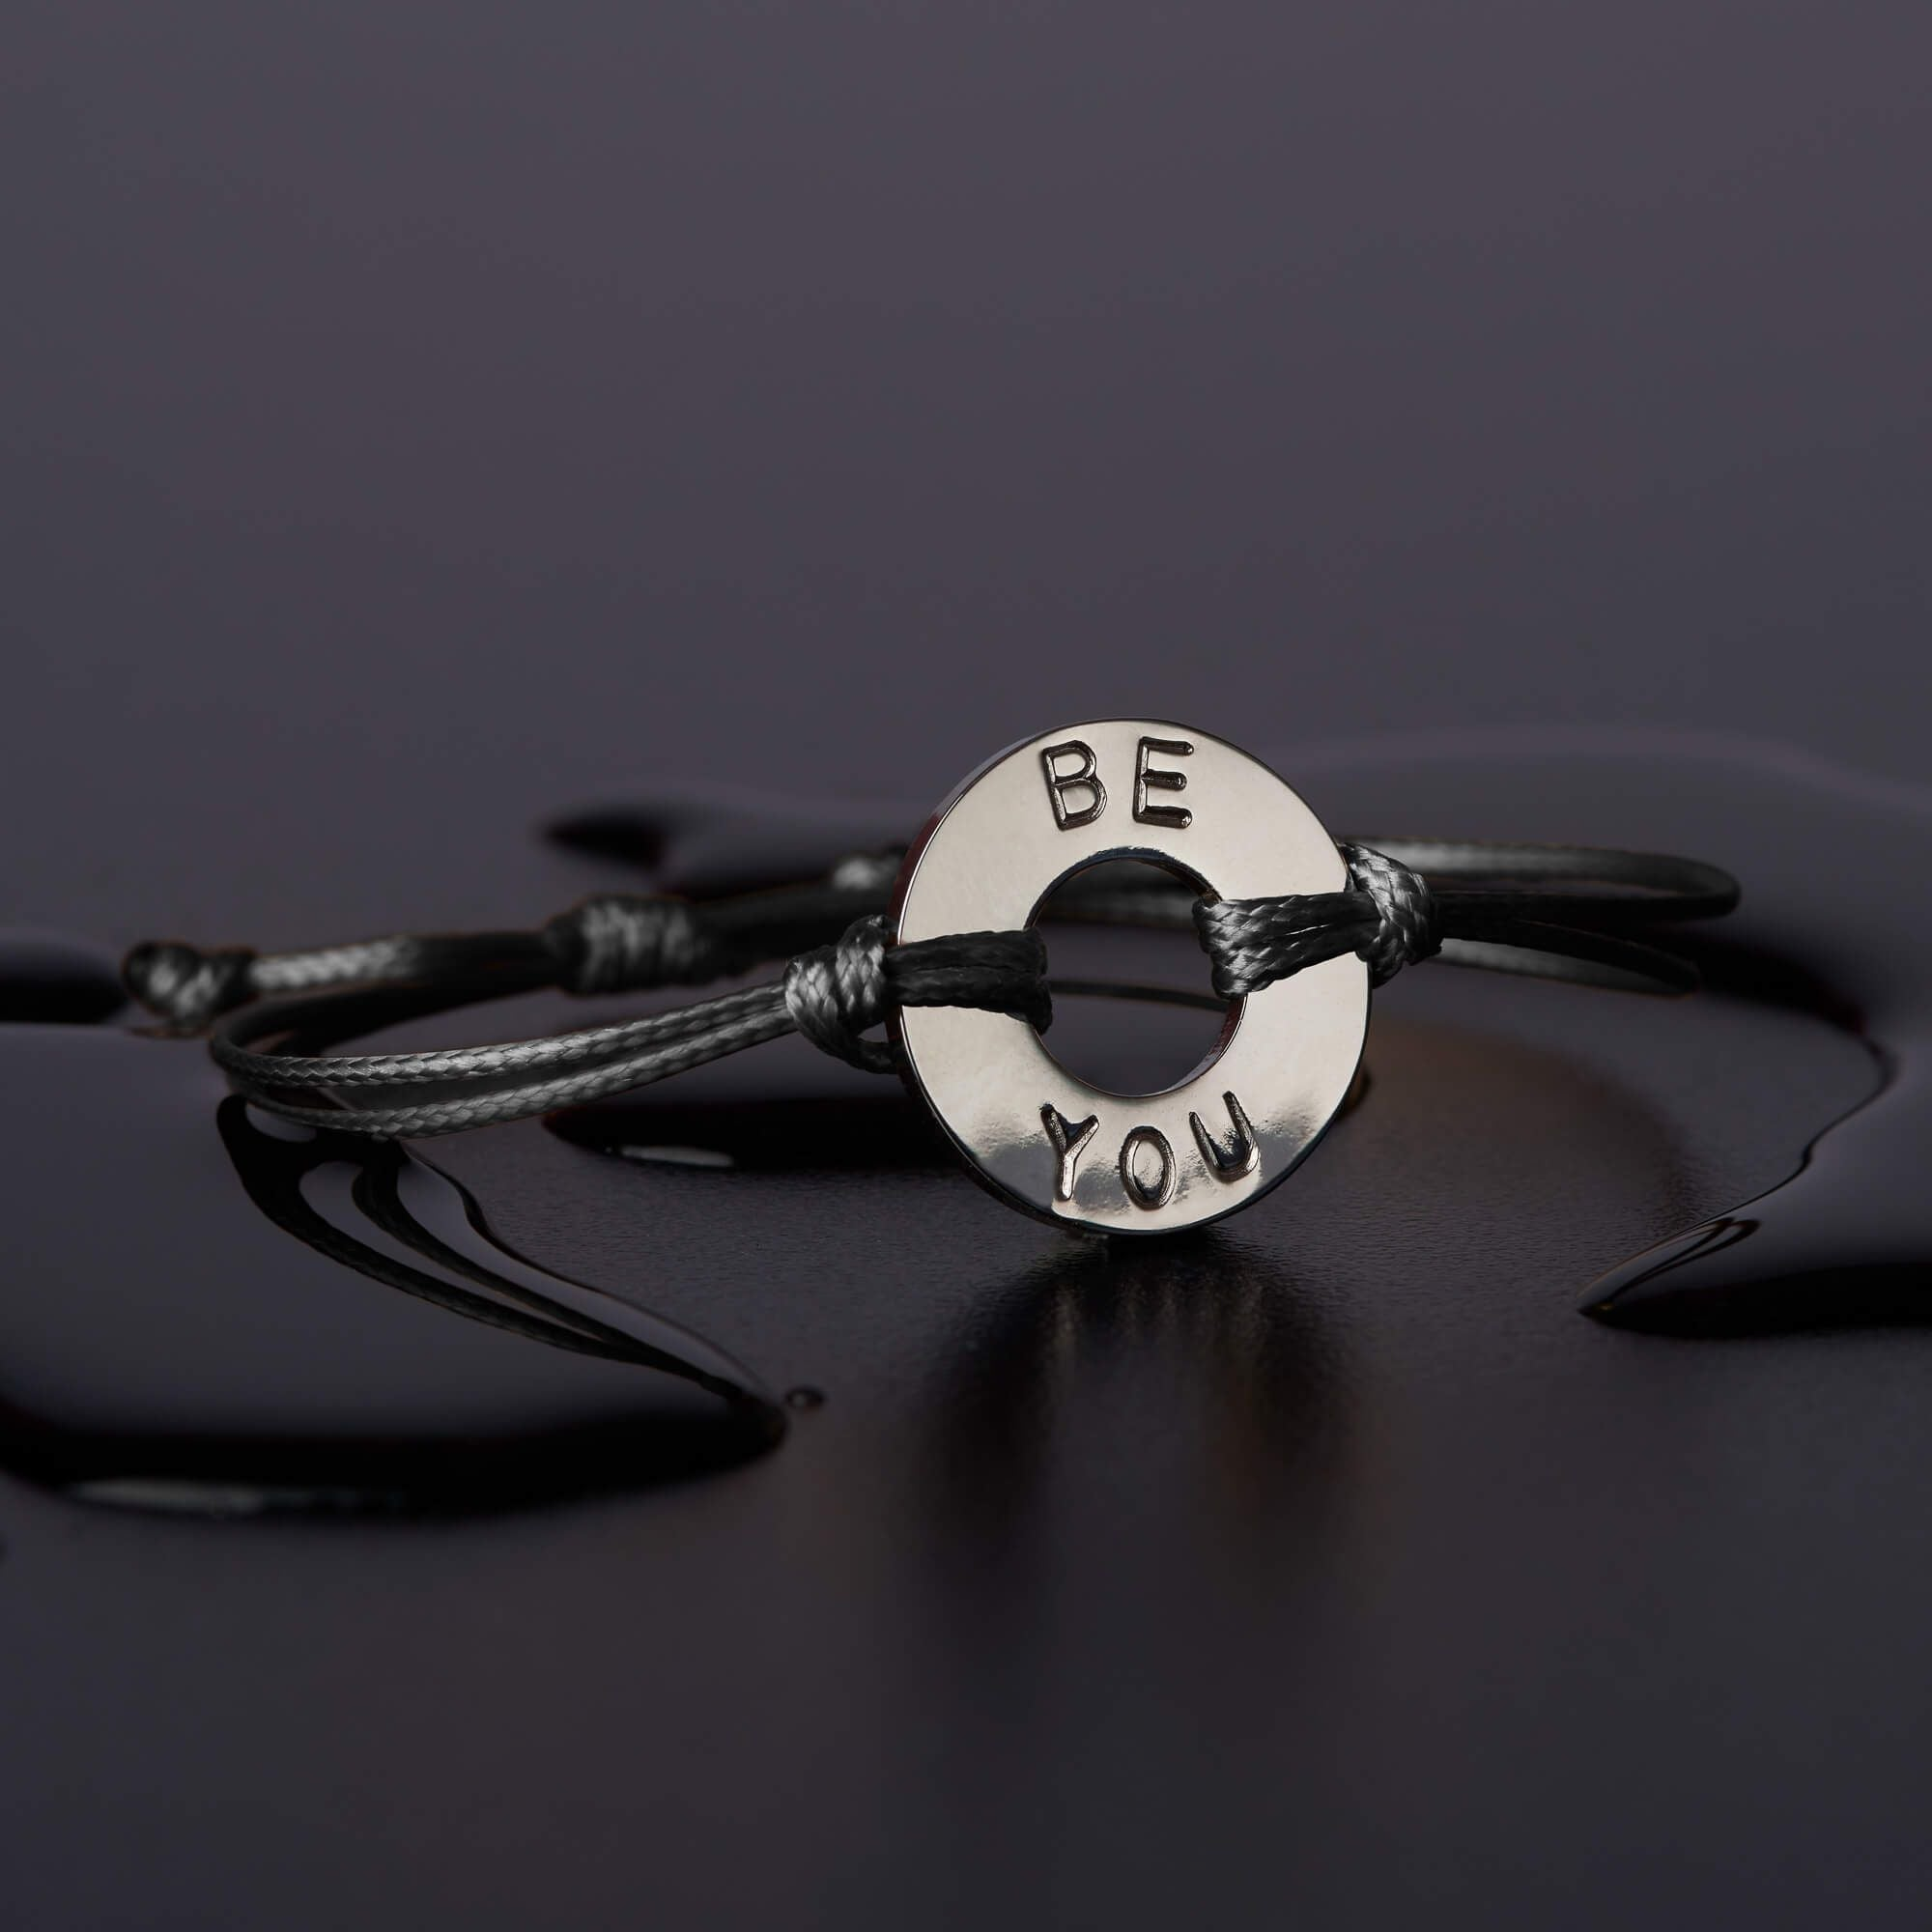 'Be You' Threaded Bracelet